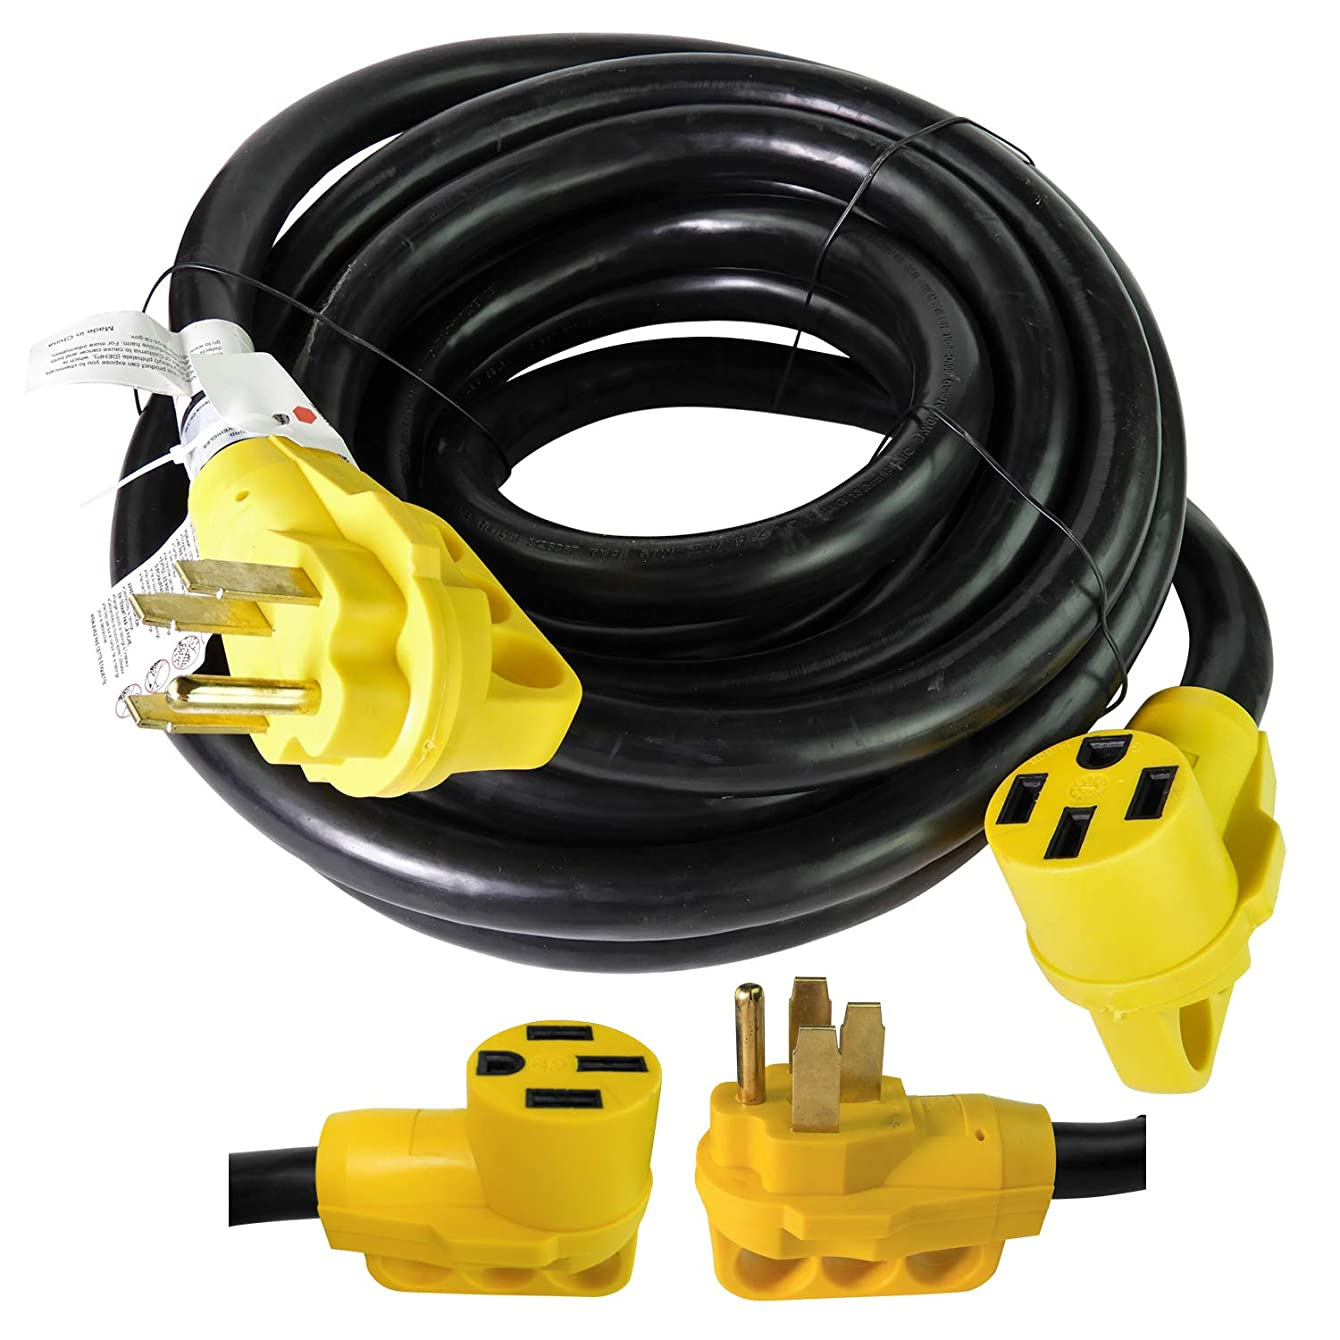 Leisure Cords 30 Ft 50 amp RV Power Extension Cord - 50 Amp Male to 50 Amp Female Standard Plug (50 Amp - 30 Foot)